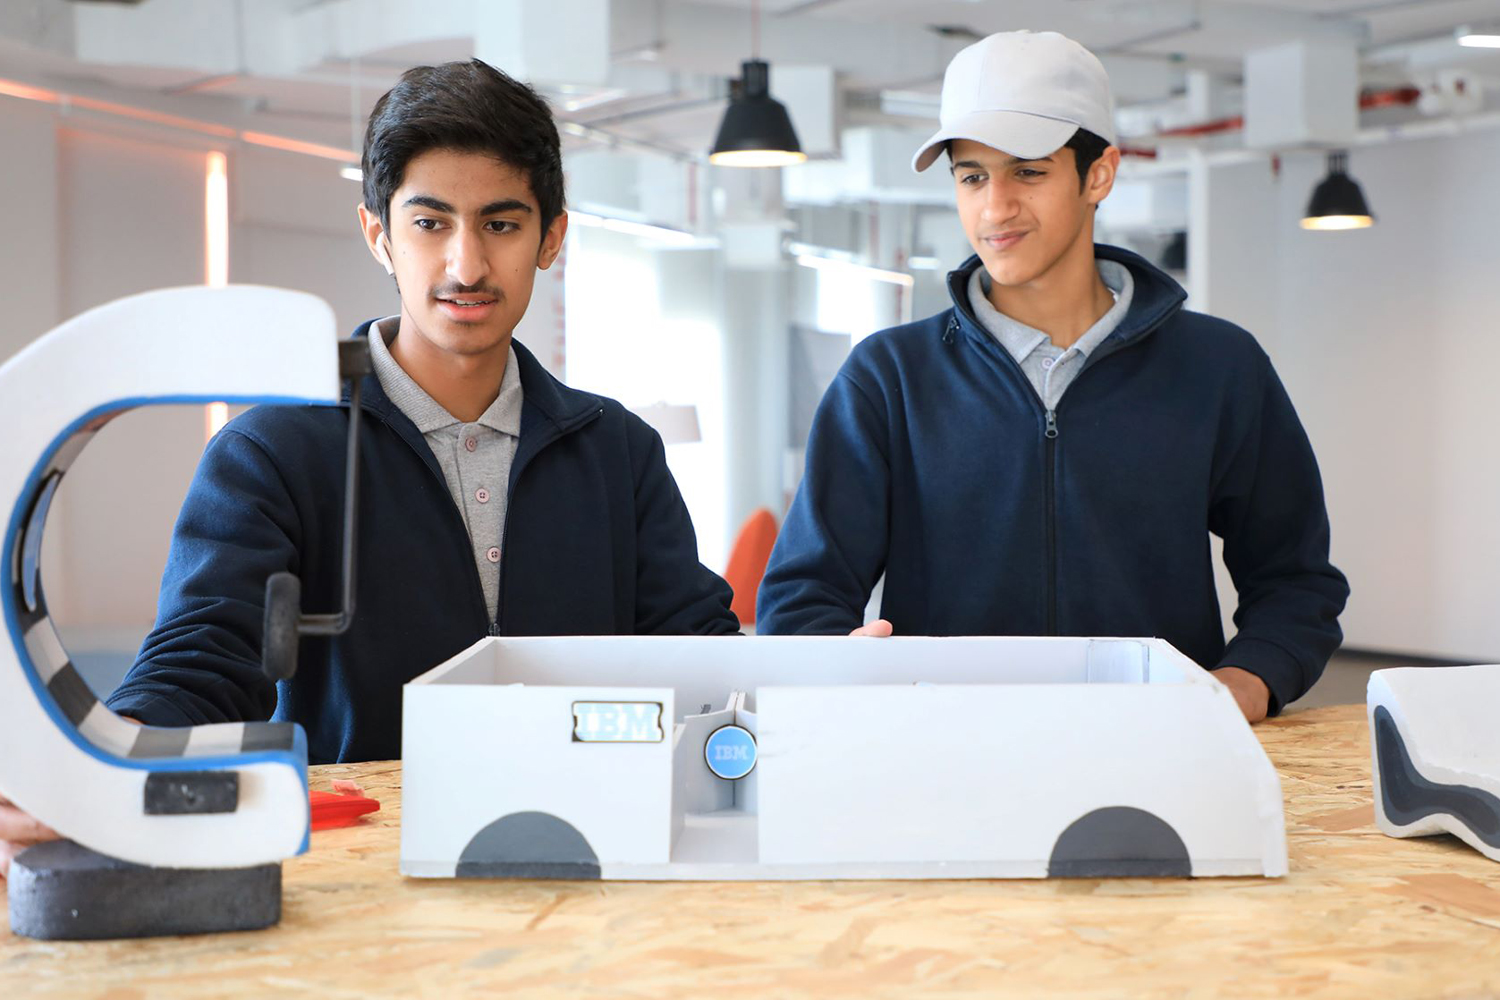 Dubai Institute of Design and Innovation announces winners of Project Design Space competition